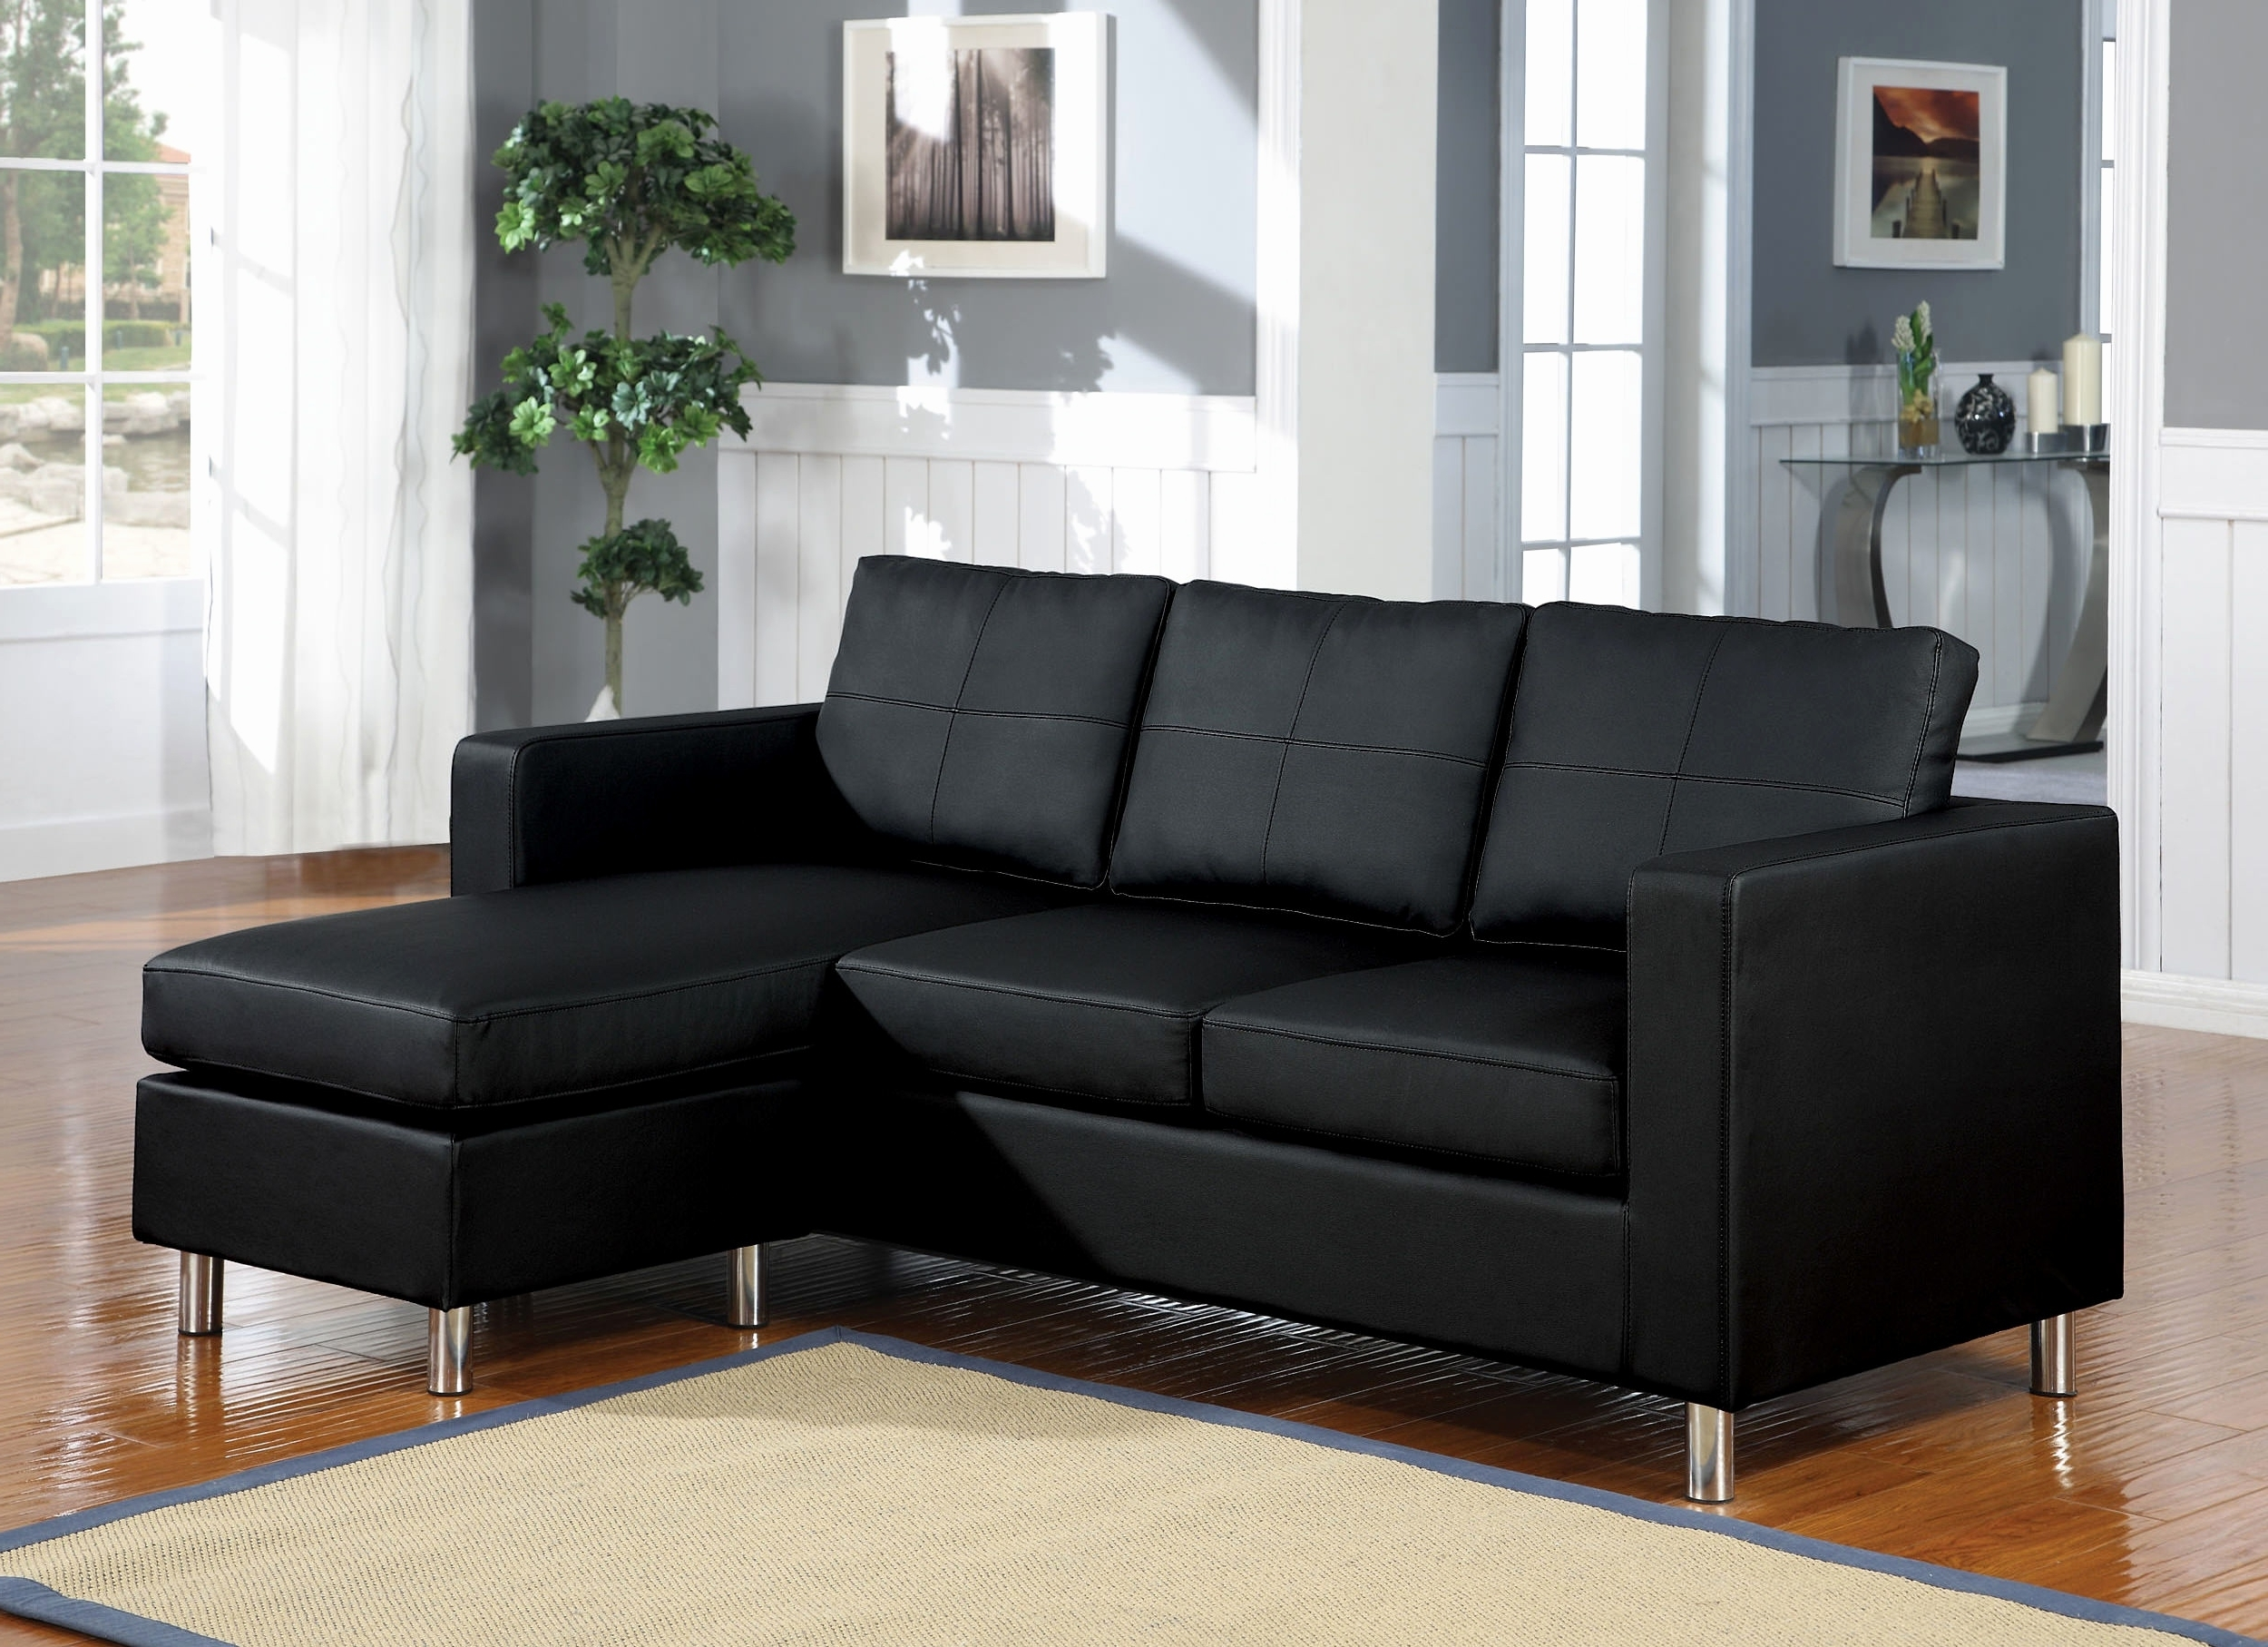 Tiny Sofas With Regard To Well Liked Small Space Sectional Sofa Elegant Sectional Sofa Design Awesome (View 6 of 15)